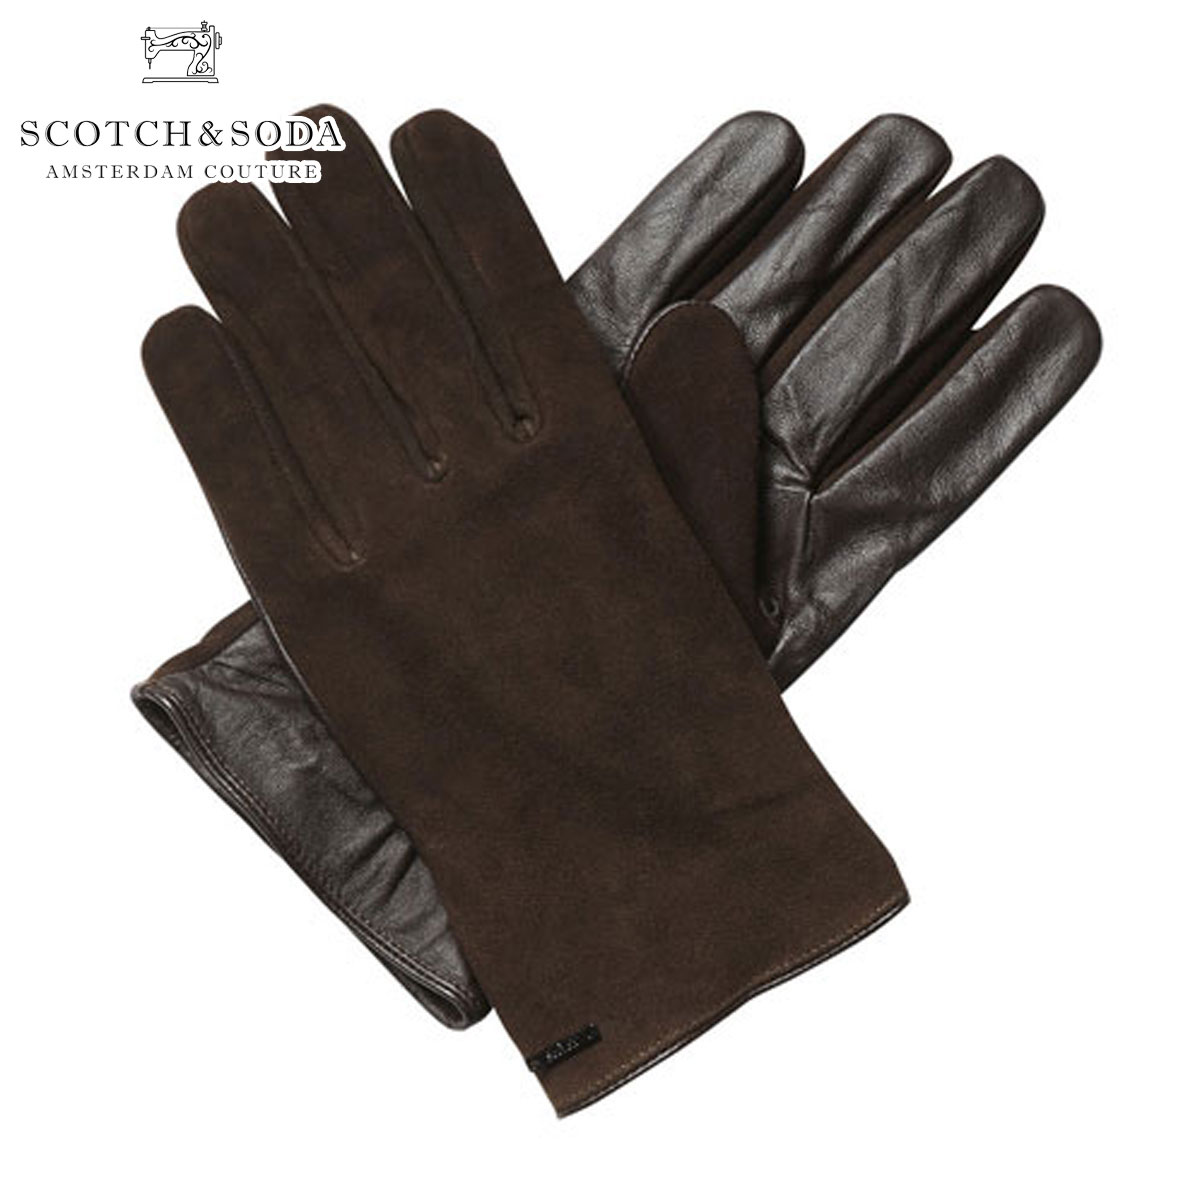 【販売期間 quality suede 6 Gloves/11 10:00~6/20 09:59】 スコッチアンドソーダ SCOTCH&SODA 正規販売店 メンズ 手袋 Gloves in suede and leather quality, EKKO STORE:9b145211 --- sunward.msk.ru